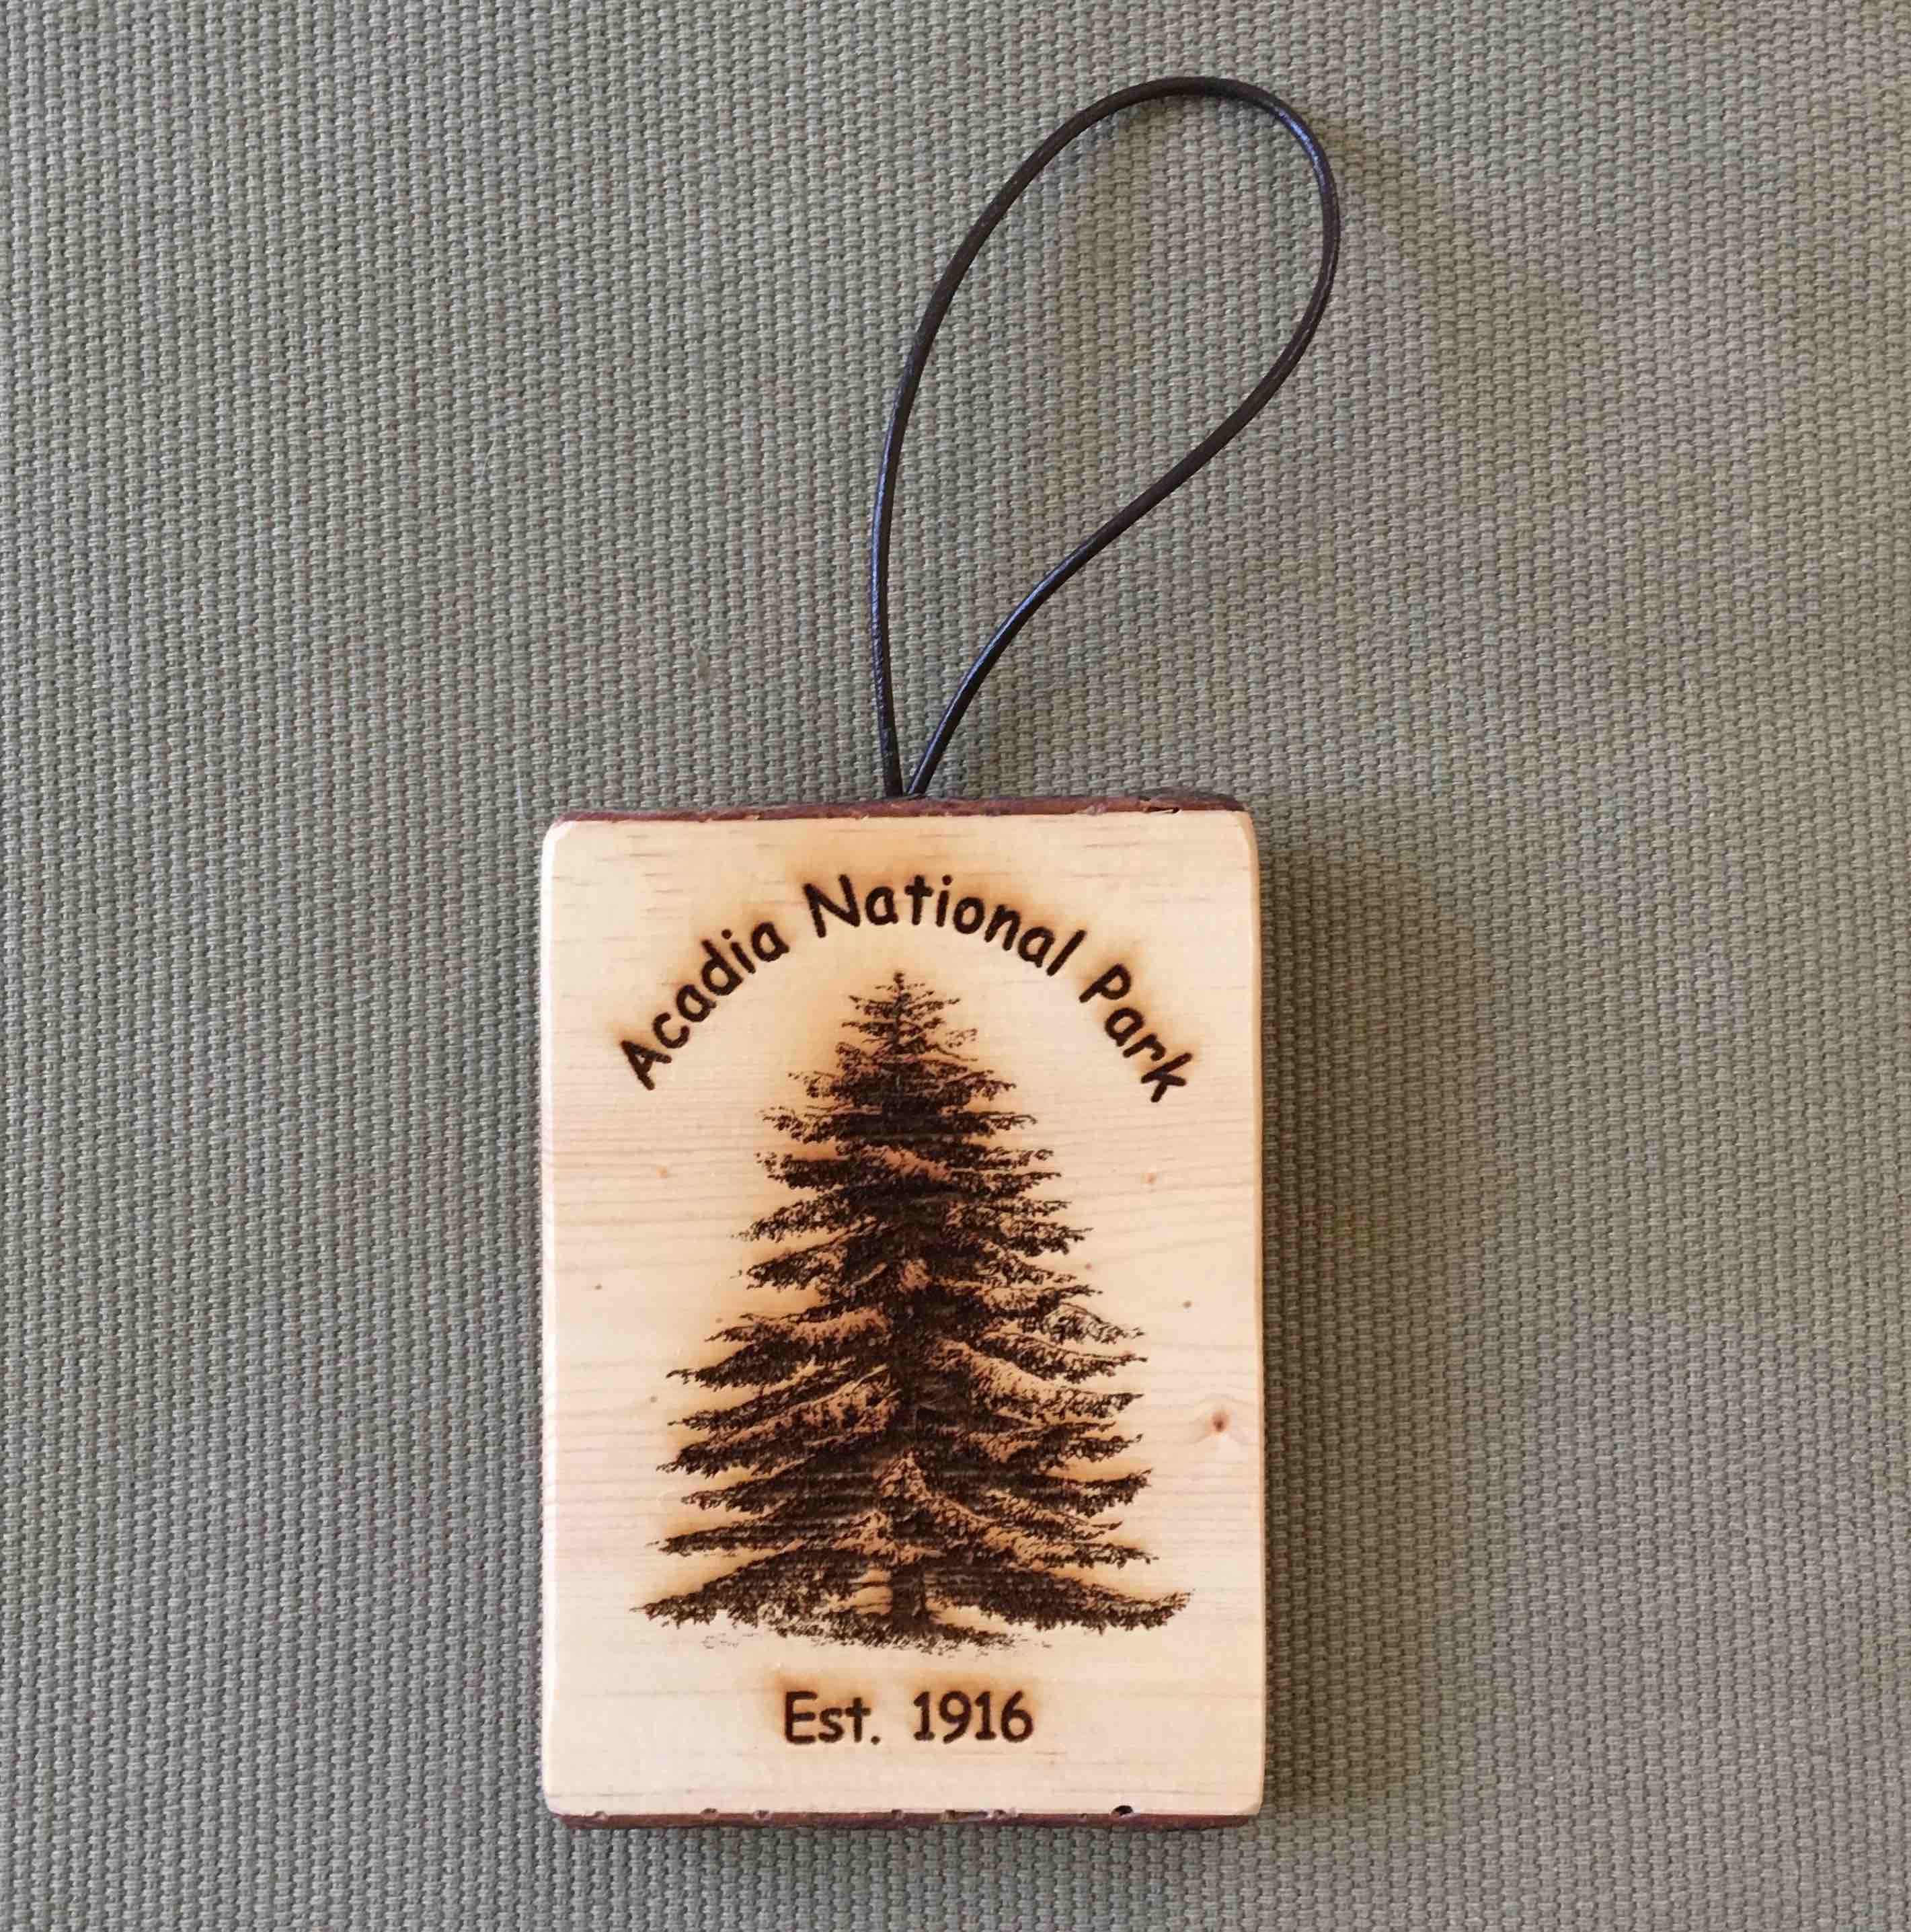 Acadia National Park – Bark Ornaments